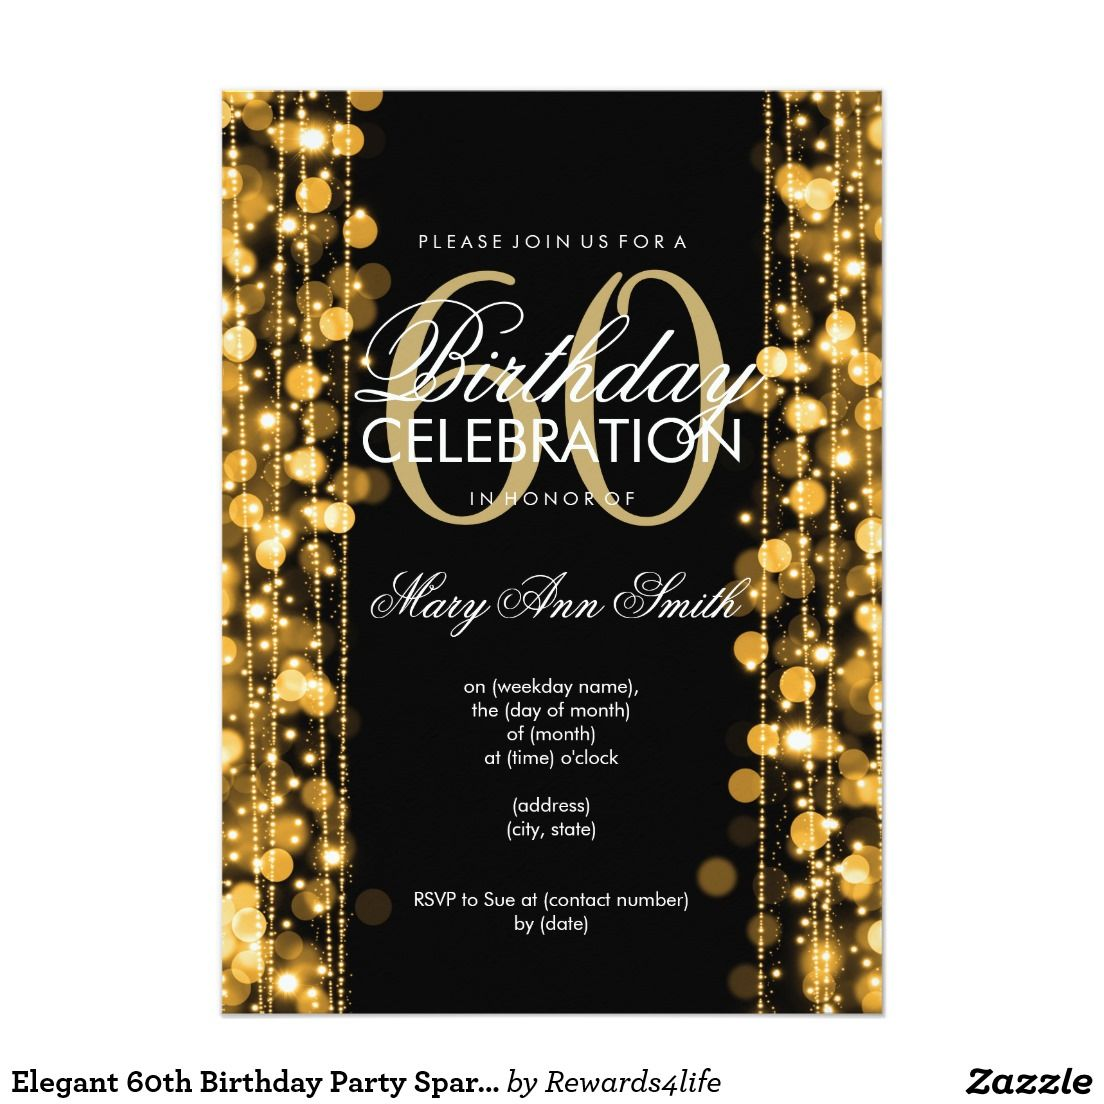 Elegant 60th Birthday Party Sparkles Gold Invitation Zazzle Com 60th Birthday Invitations 60th Birthday Party Invitations 60th Birthday